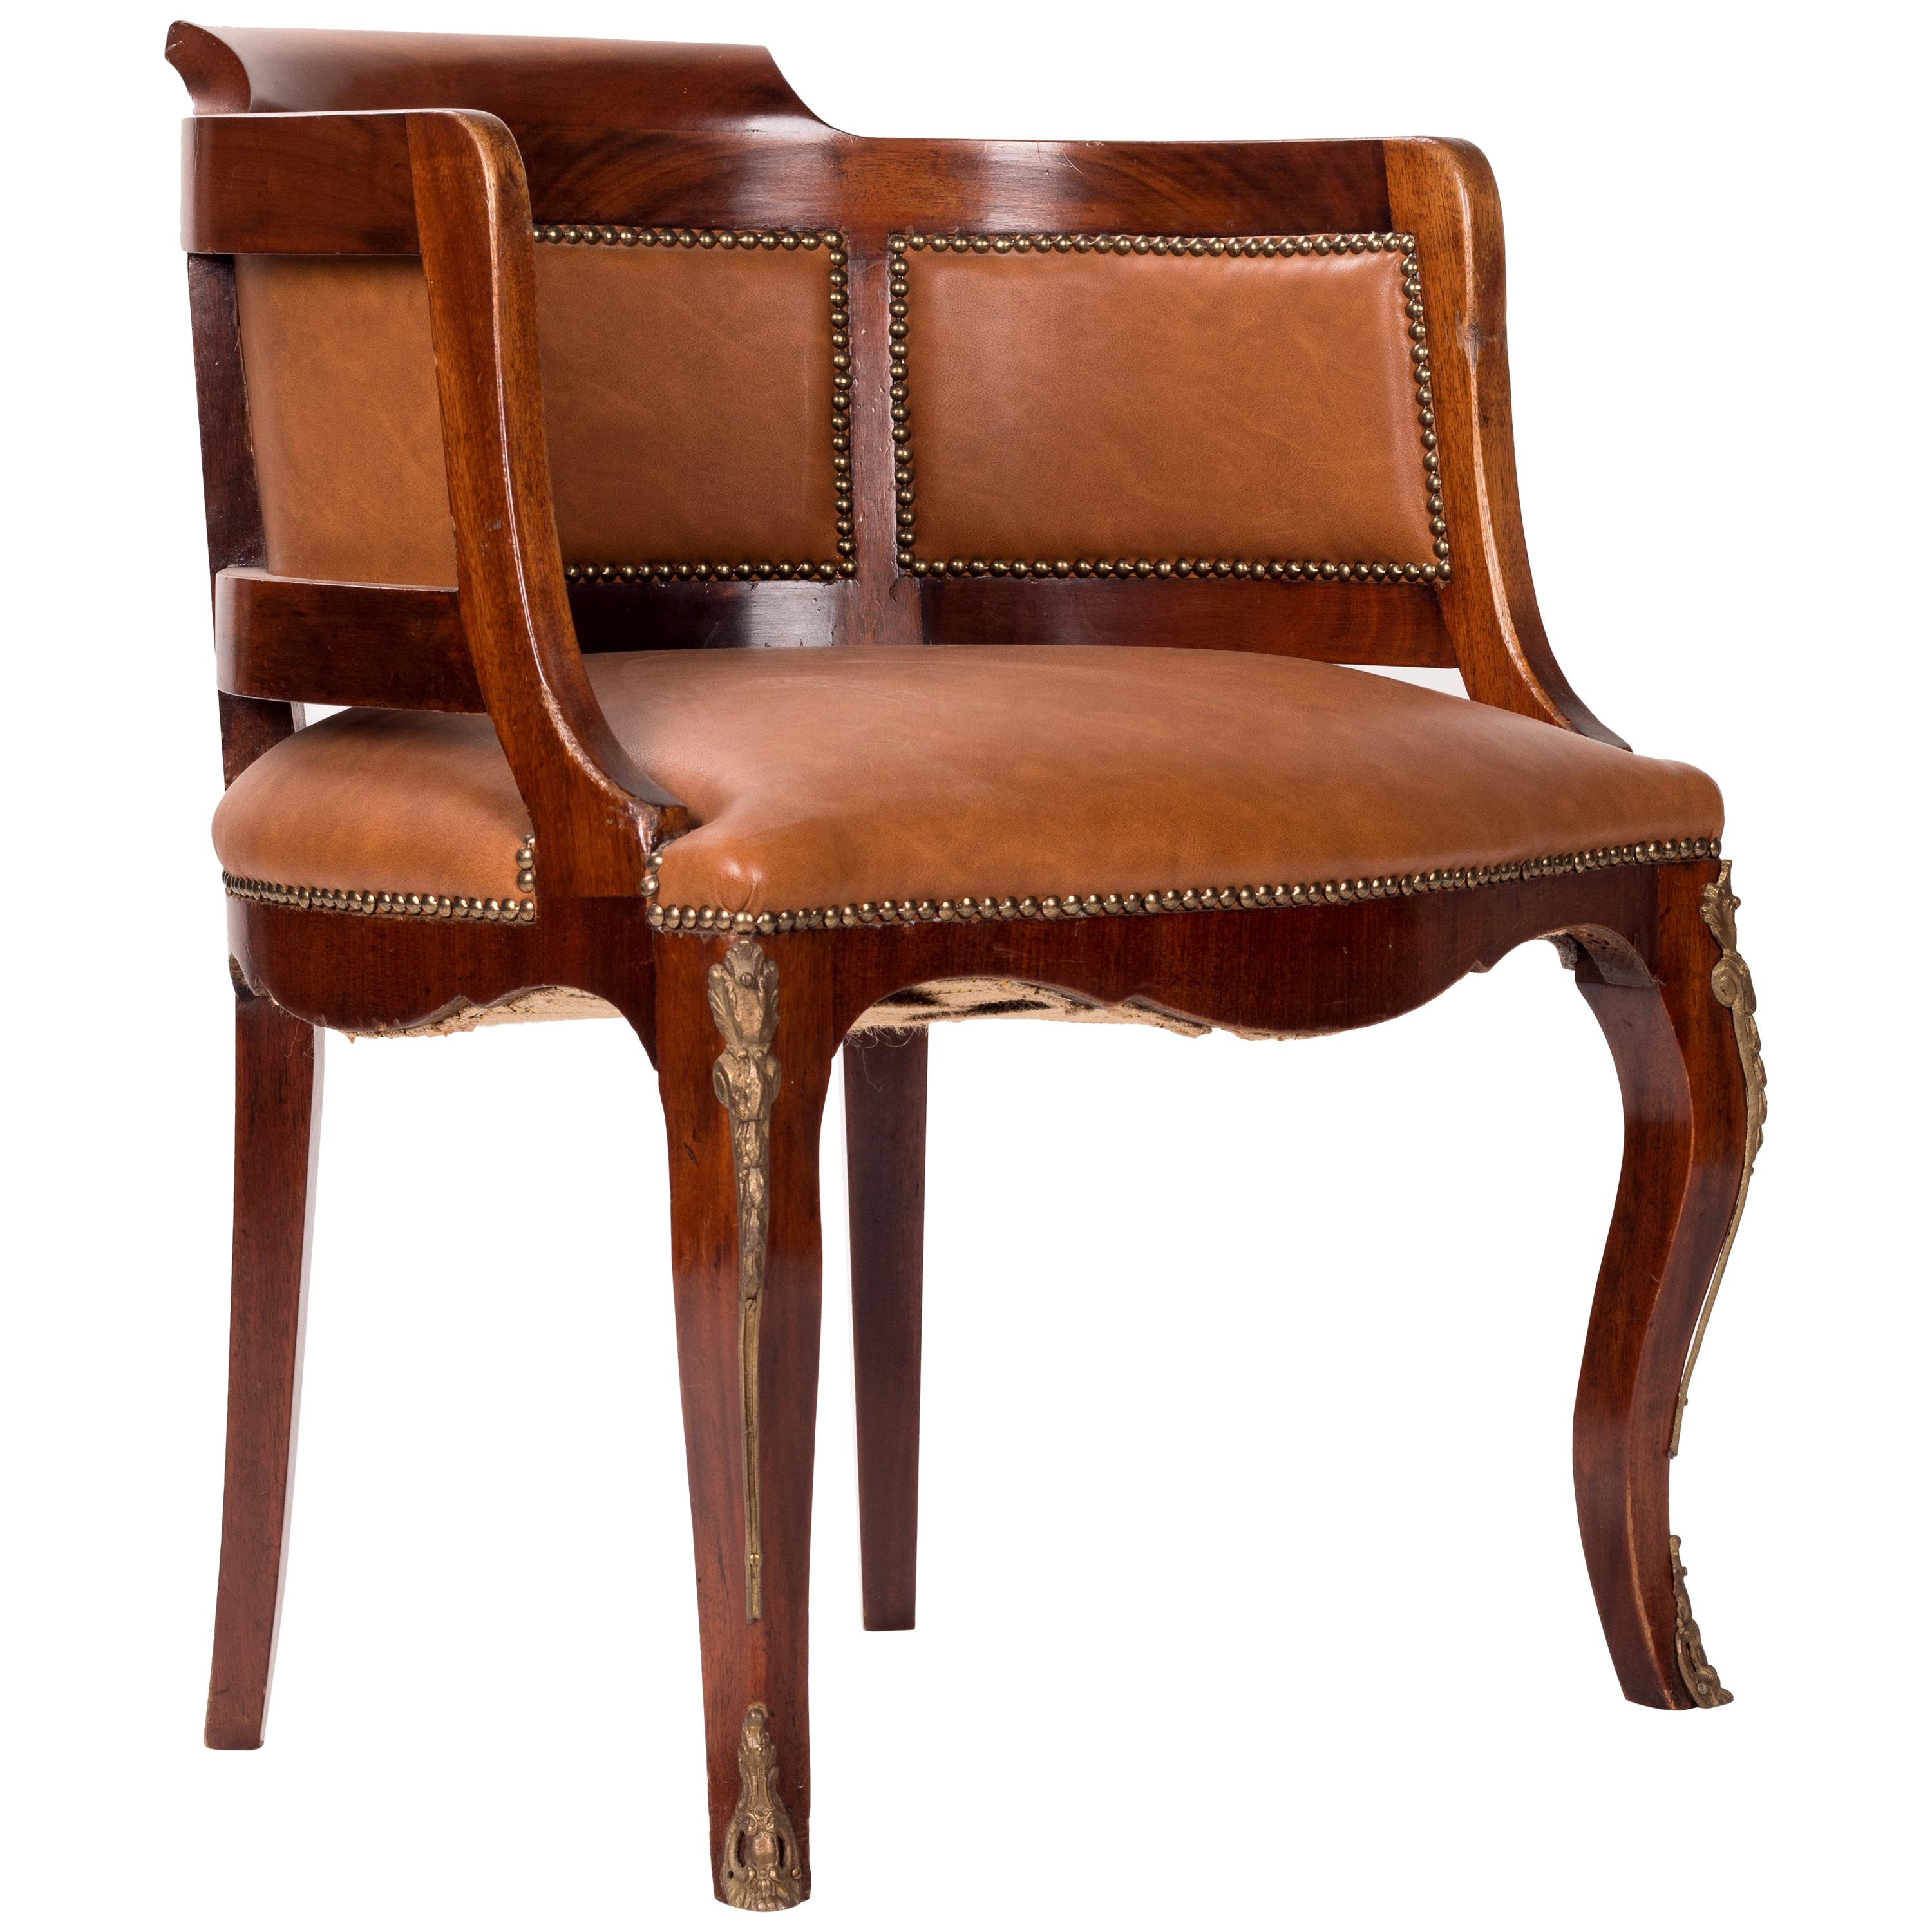 1980s French Leather Office Armchair with Brass Decorations